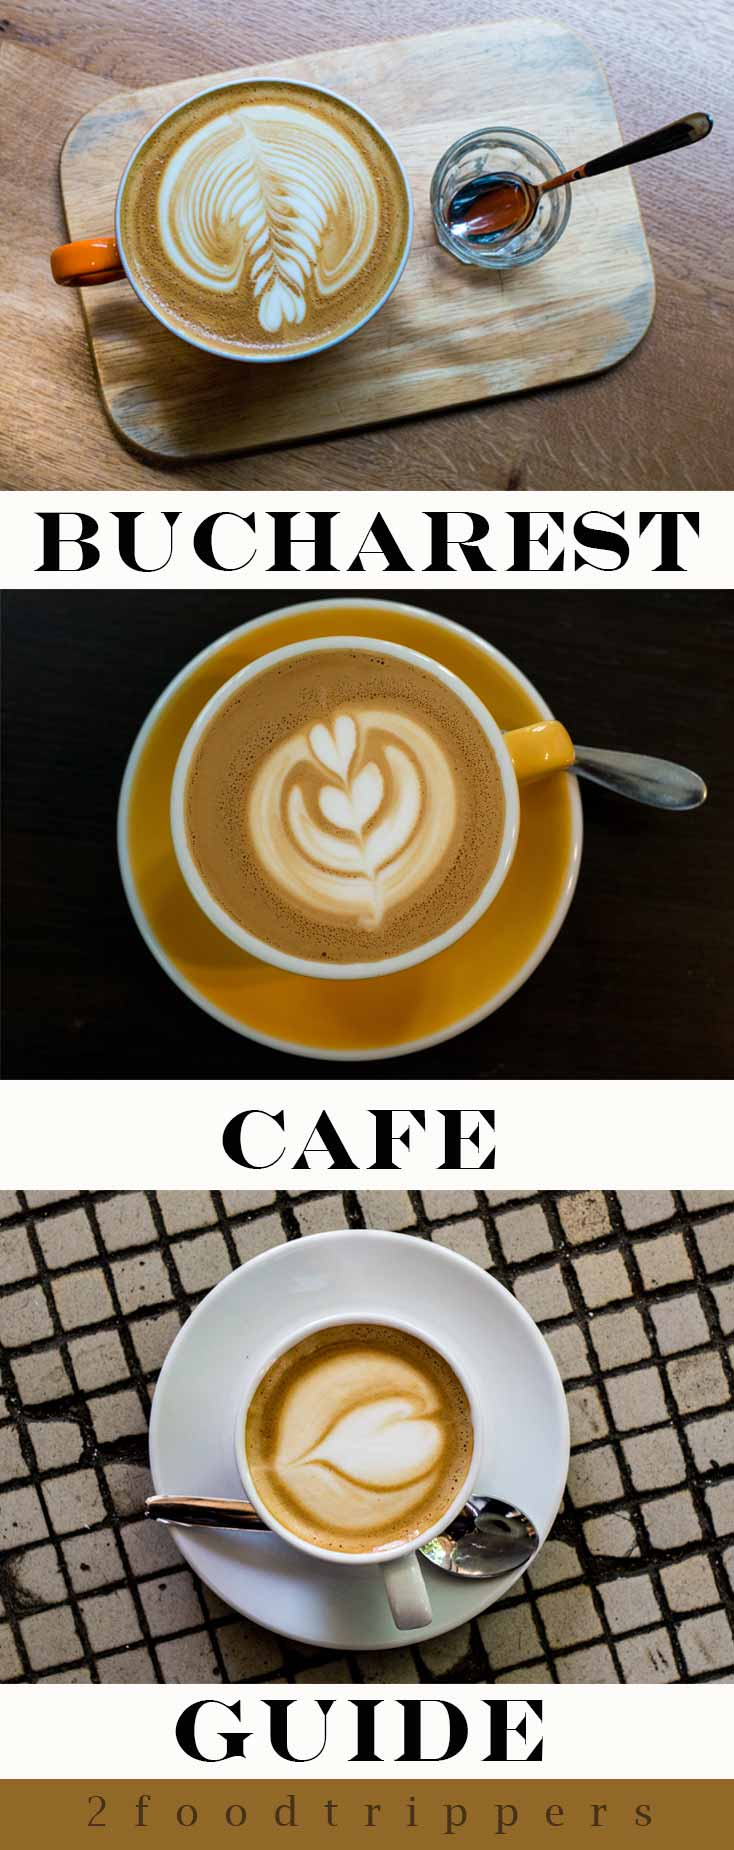 Pinterest image: three images of Bucharest coffee with caption reading 'Bucharest Cafe Guide'